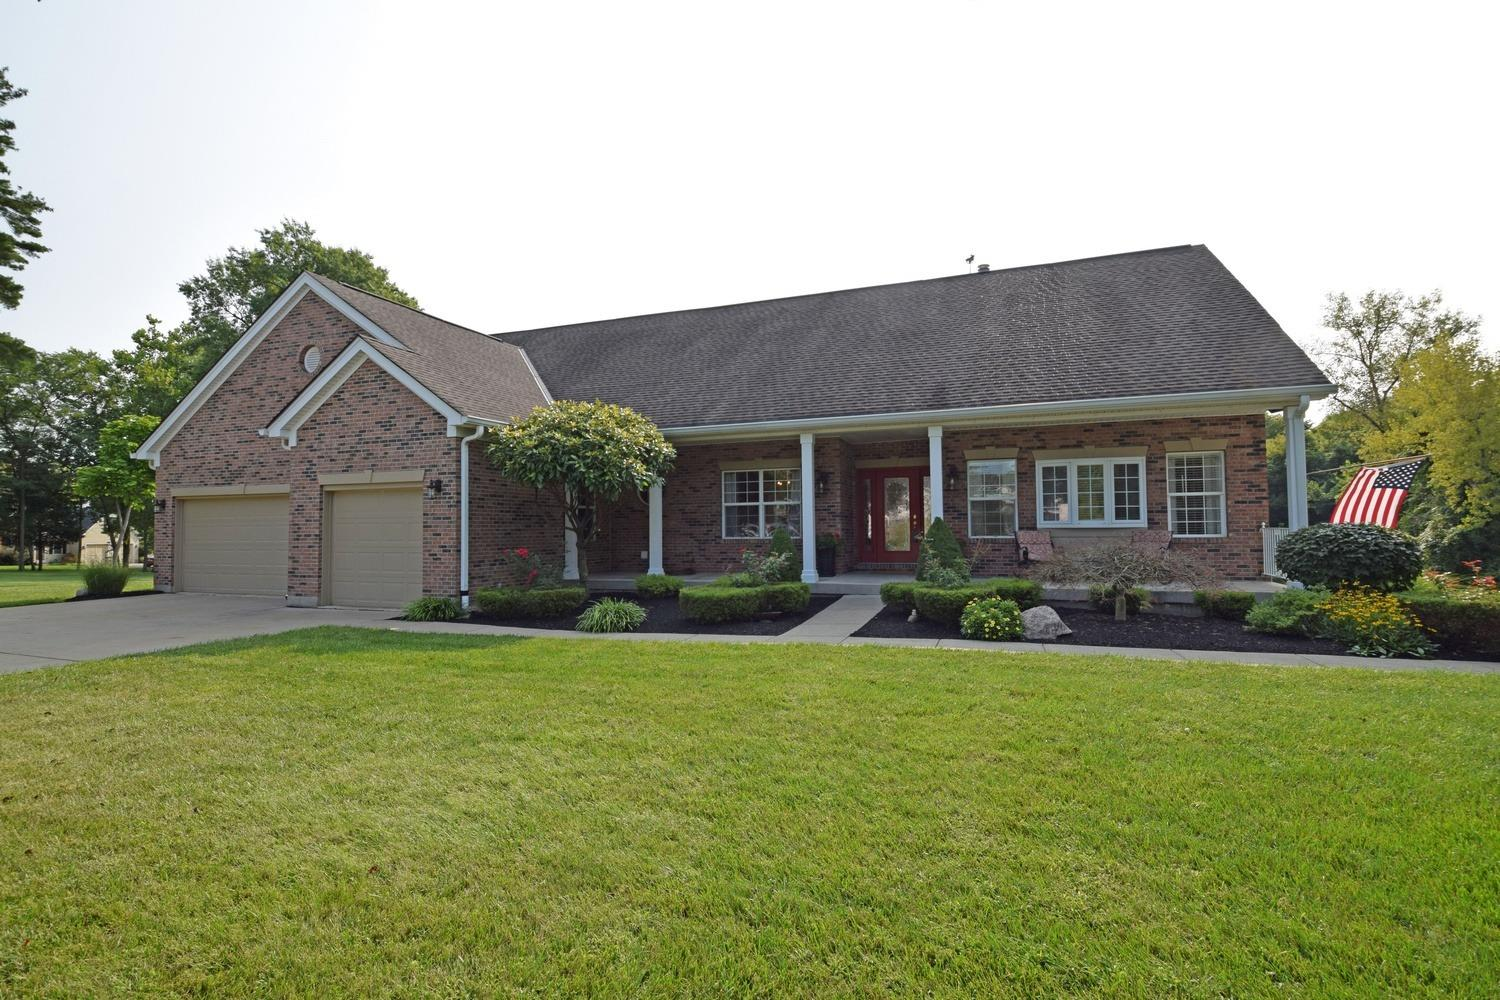 Property for sale at 5054 Nature Trail, Union Twp,  Ohio 45244